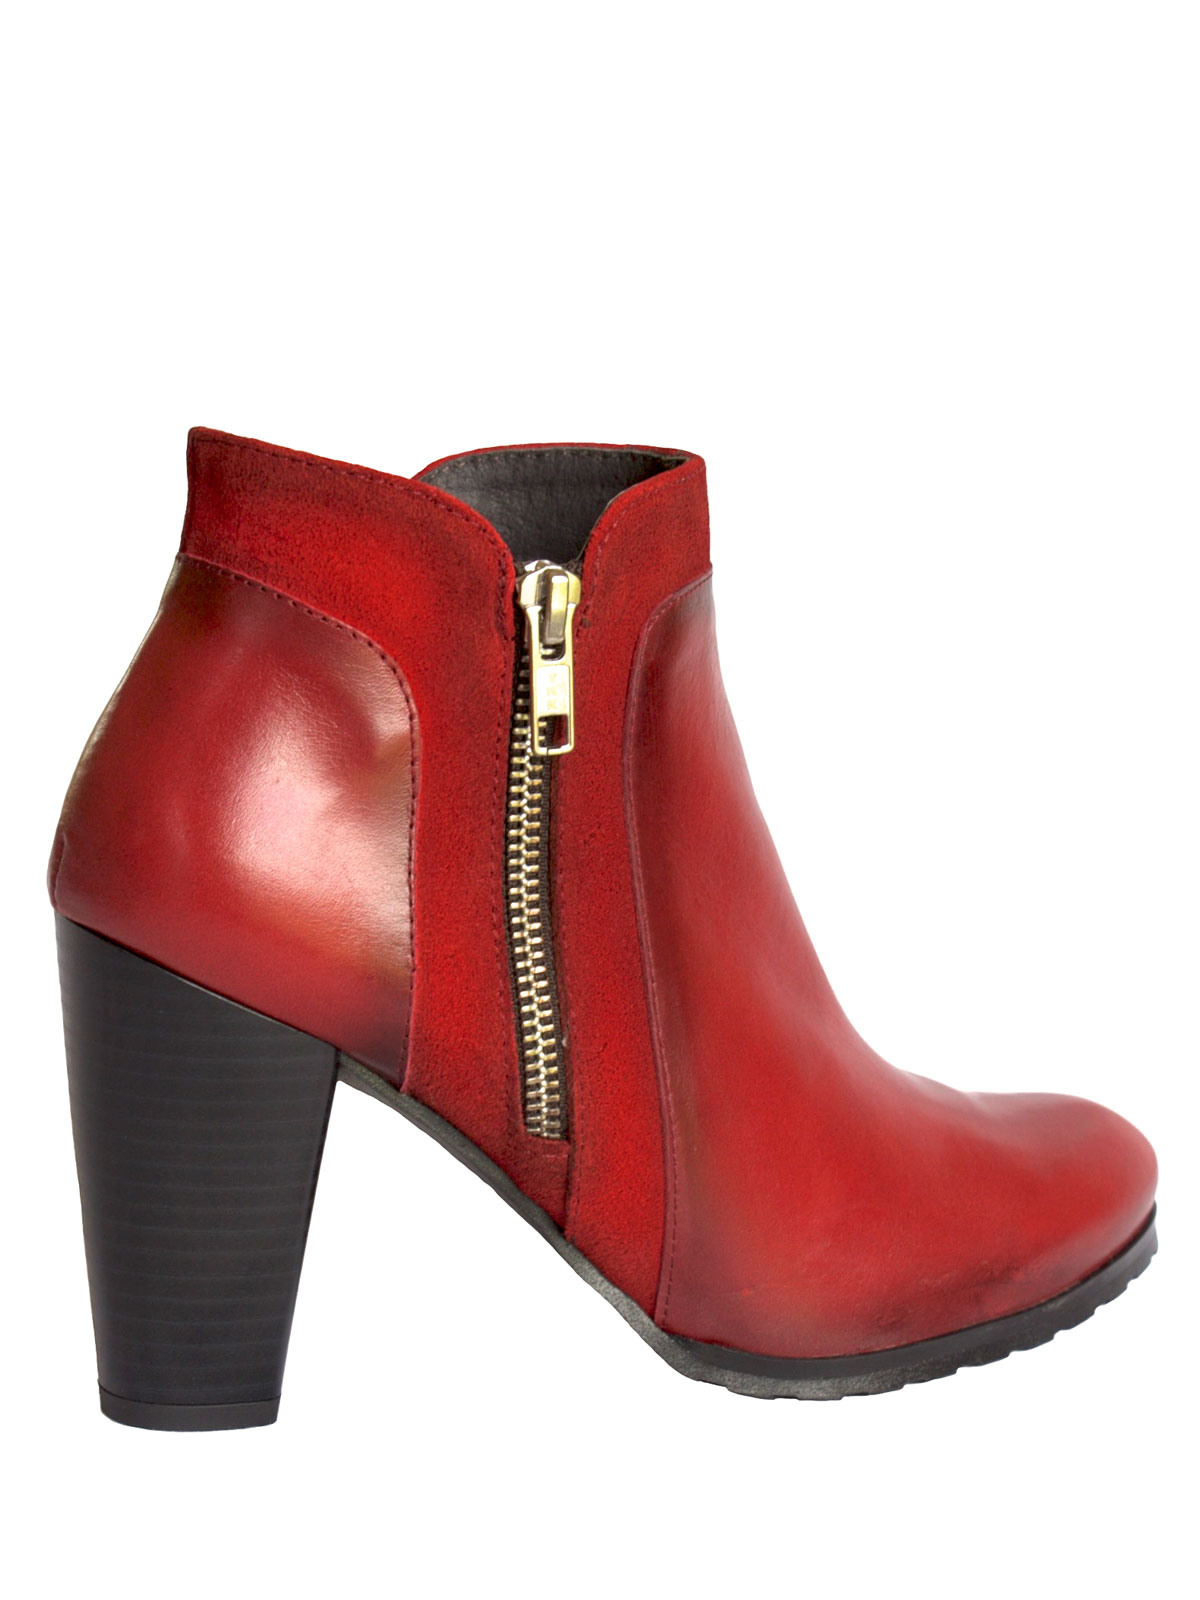 Red Leather Chunky High Heel Ankle Boots